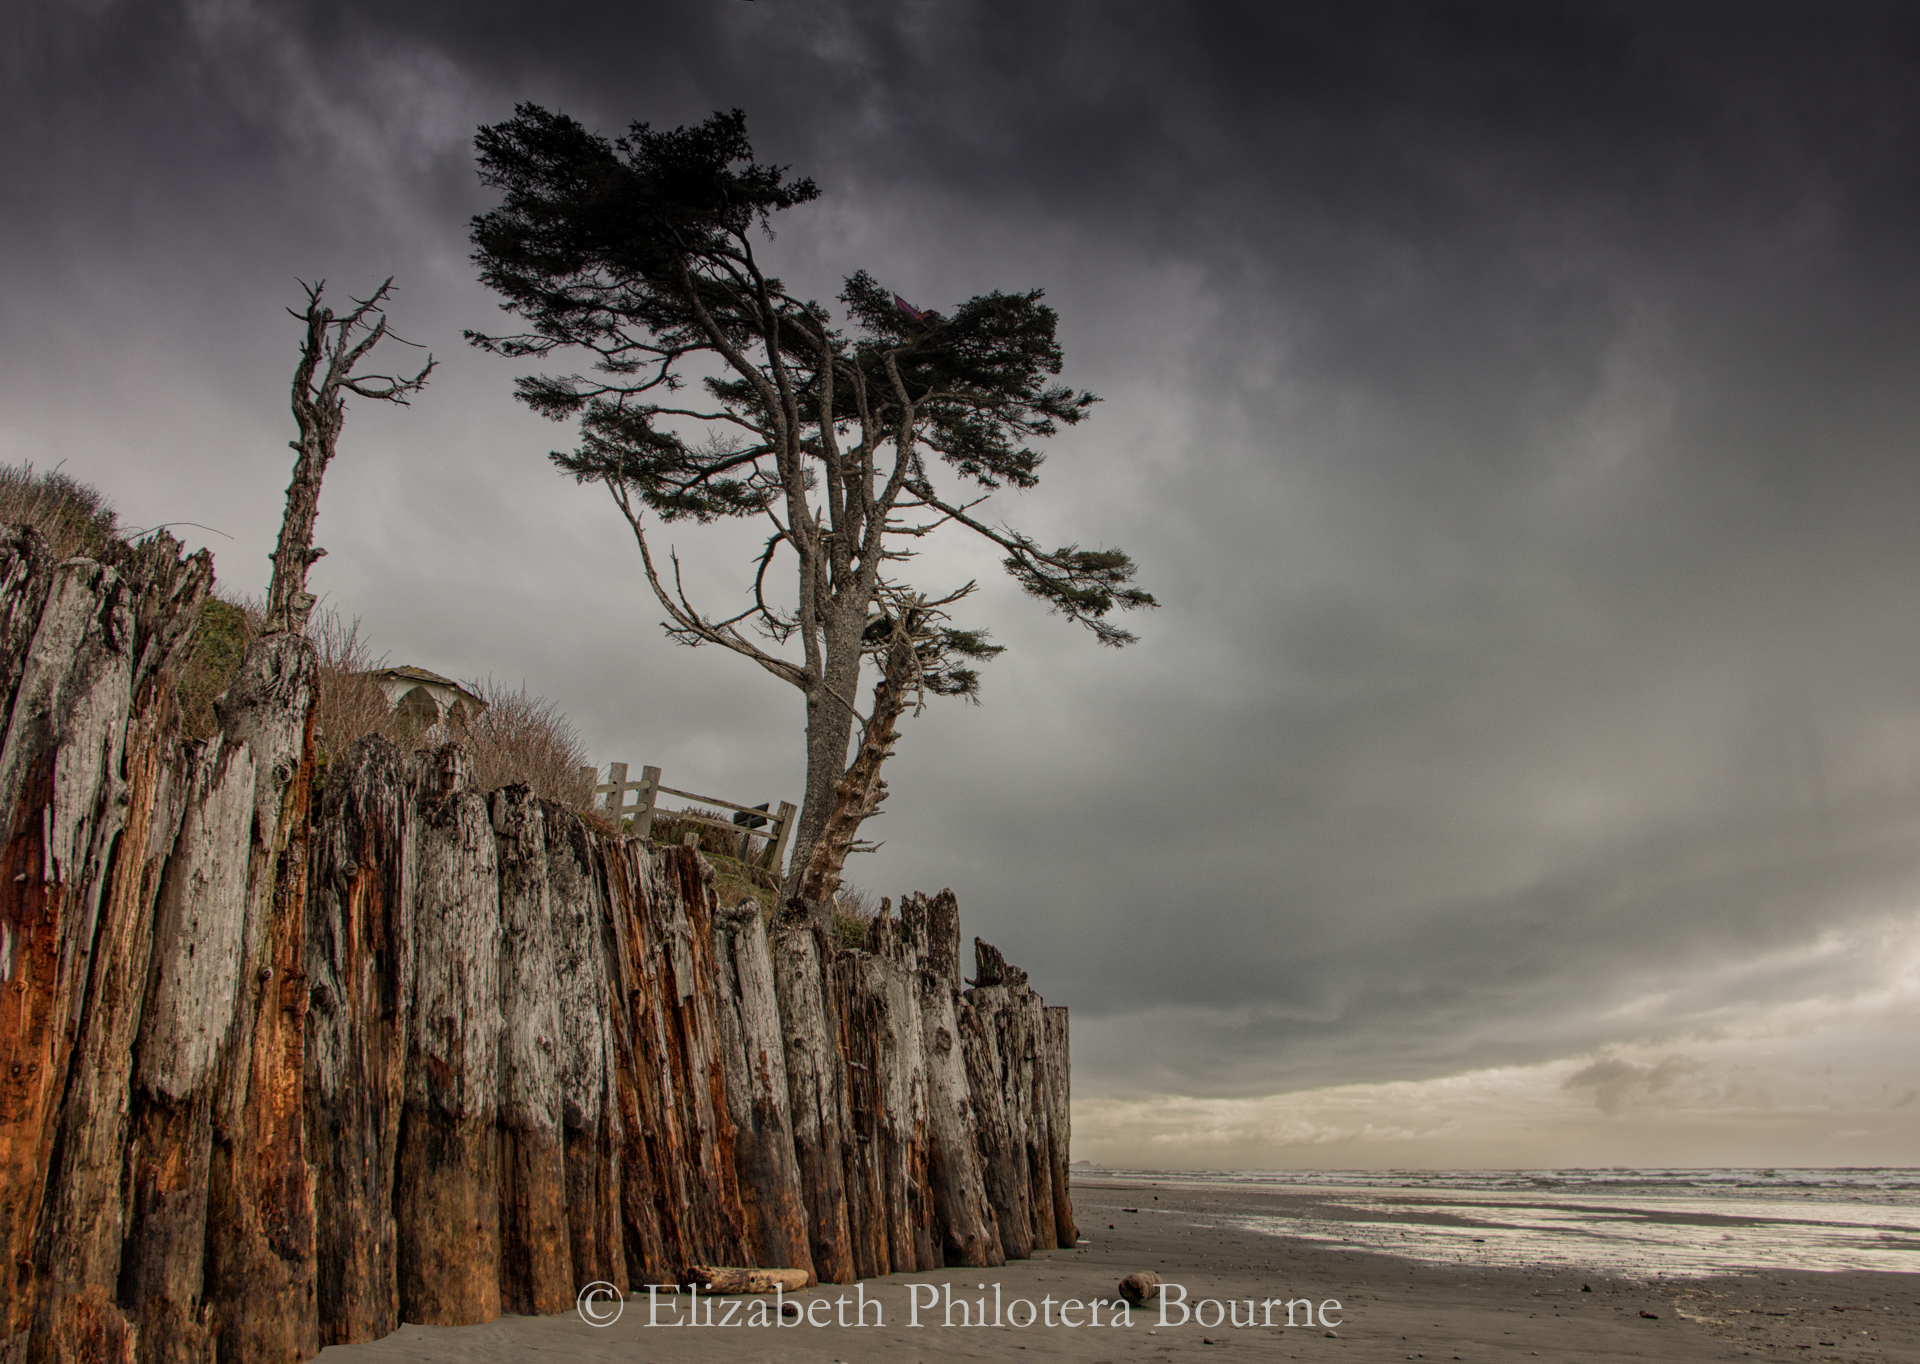 wooden barricade with single tree on beach in approaching storm